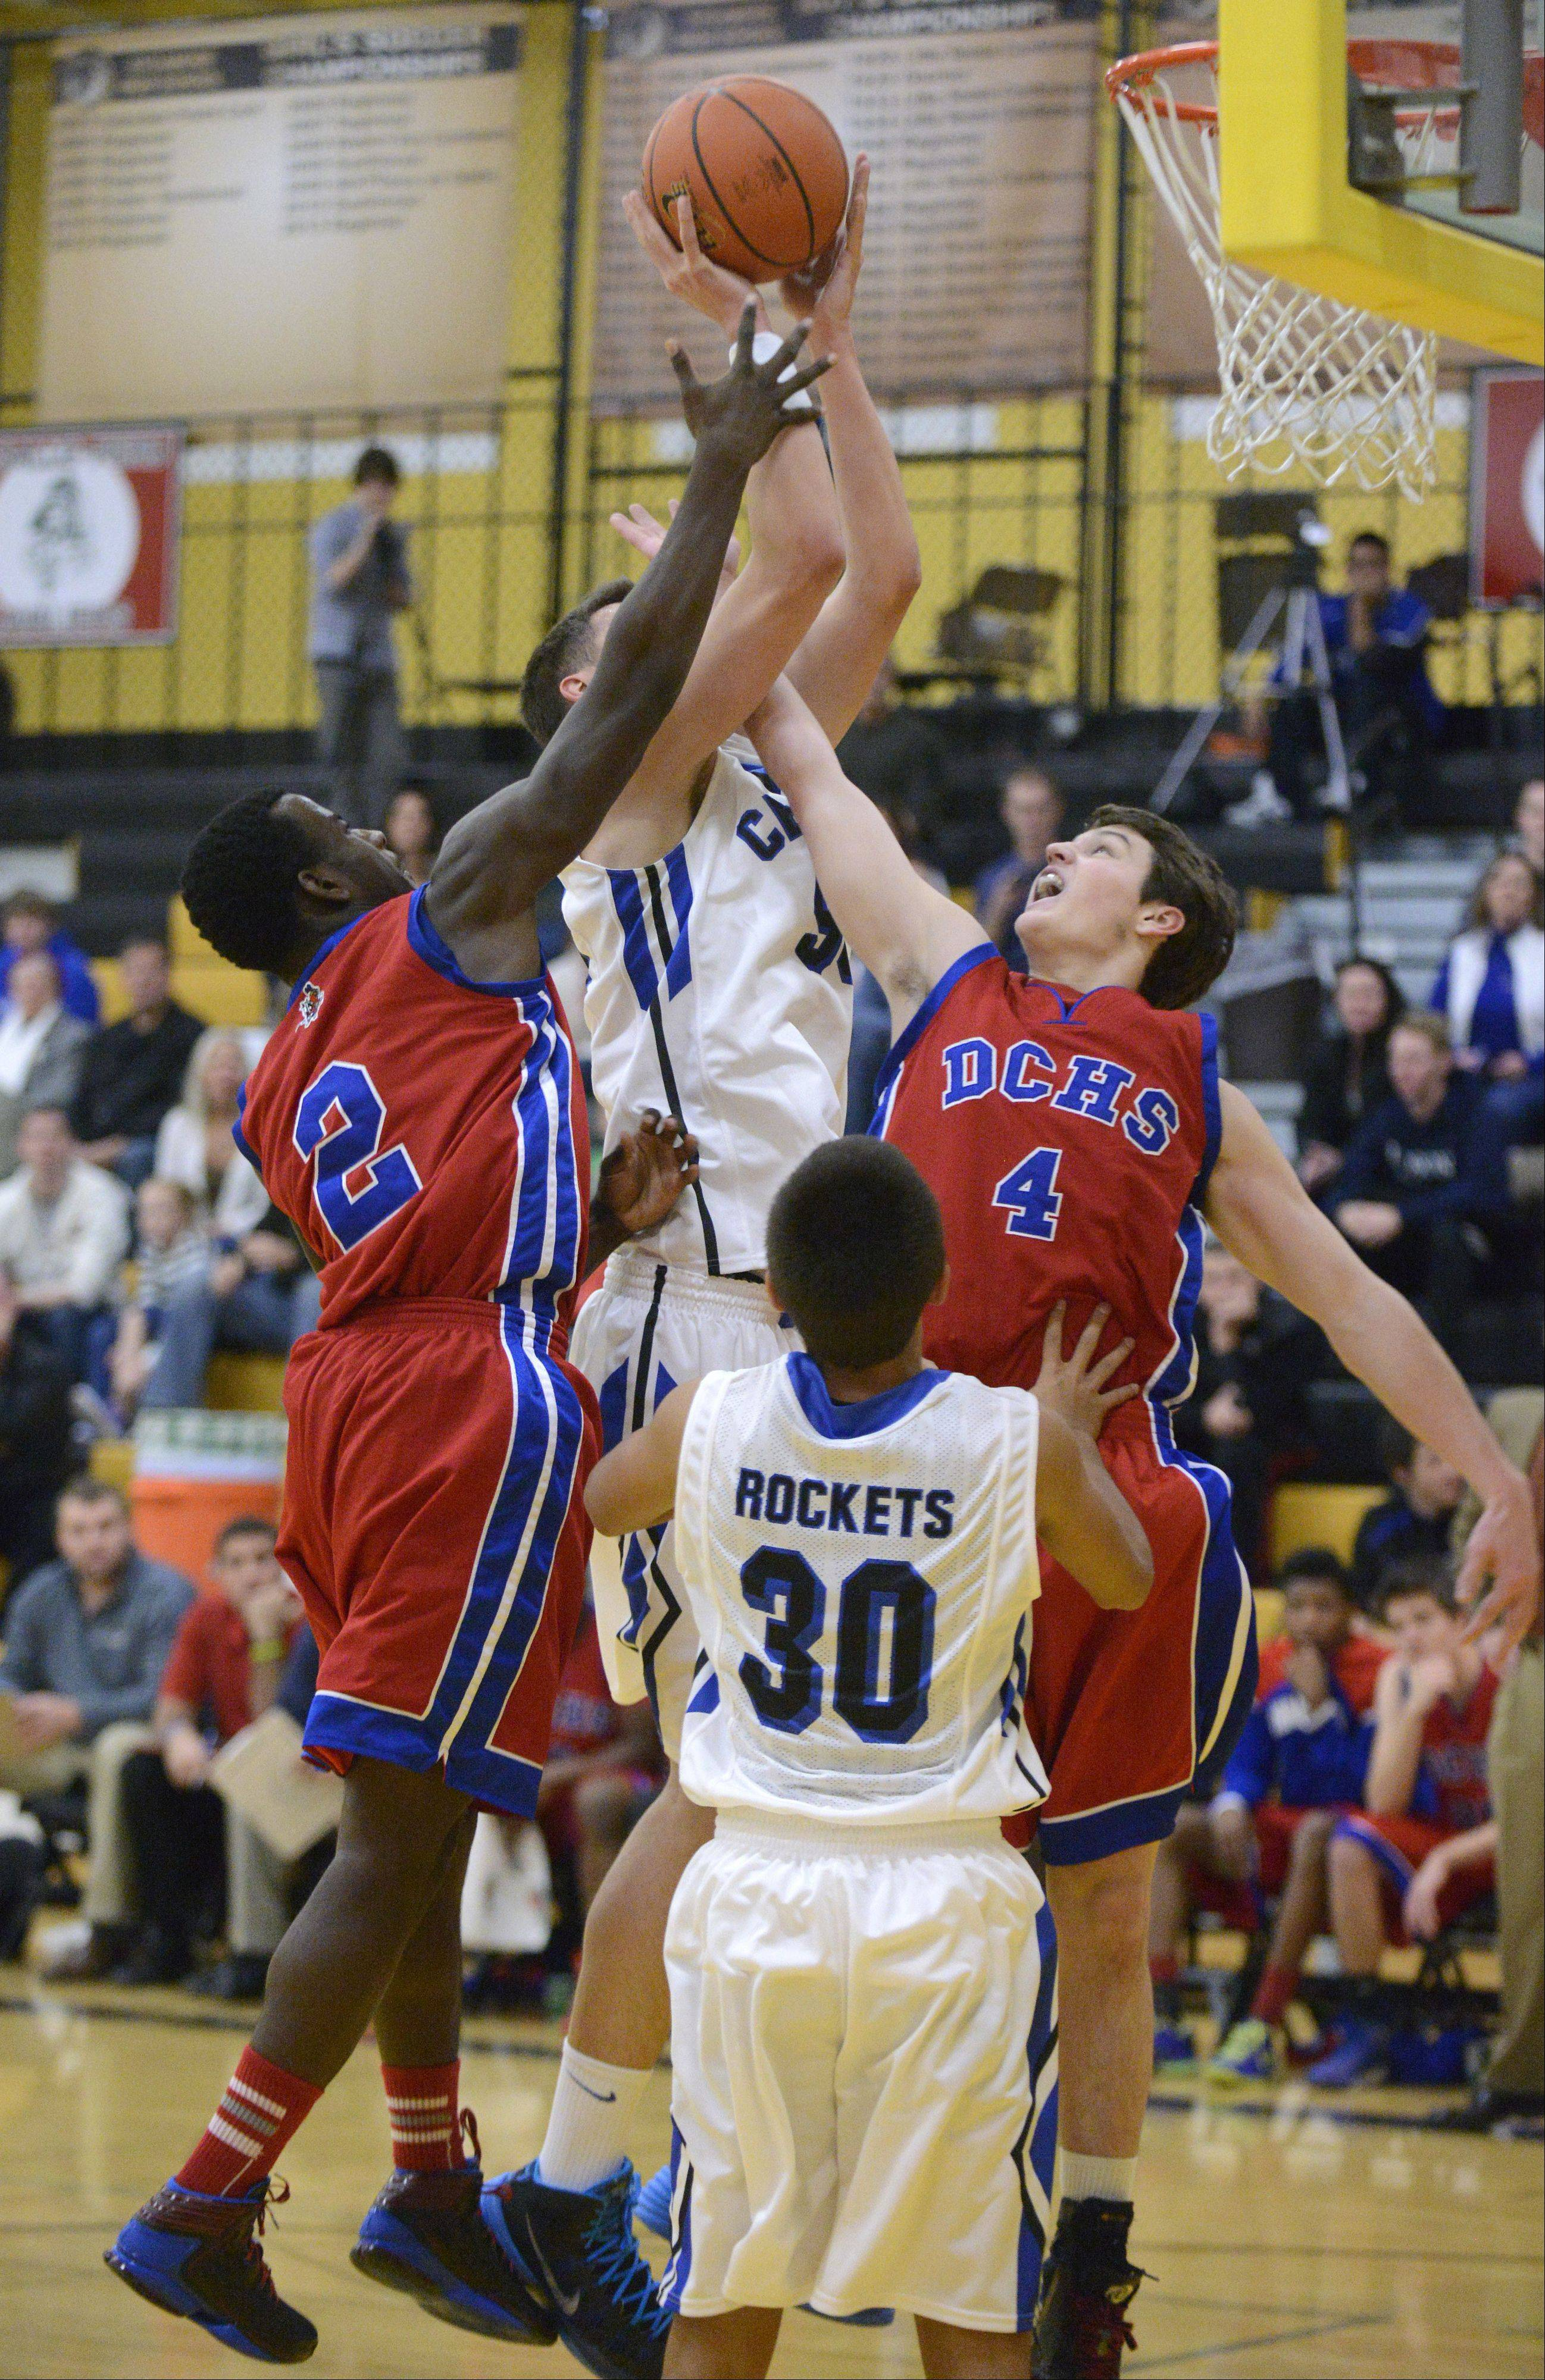 Burlington Central's Duncan Ozburn sinks a shot despite being swarmed by Dundee-Crown's Malik Dunner (2) and Sam Buckley in the first quarter on Tuesday, November 26.